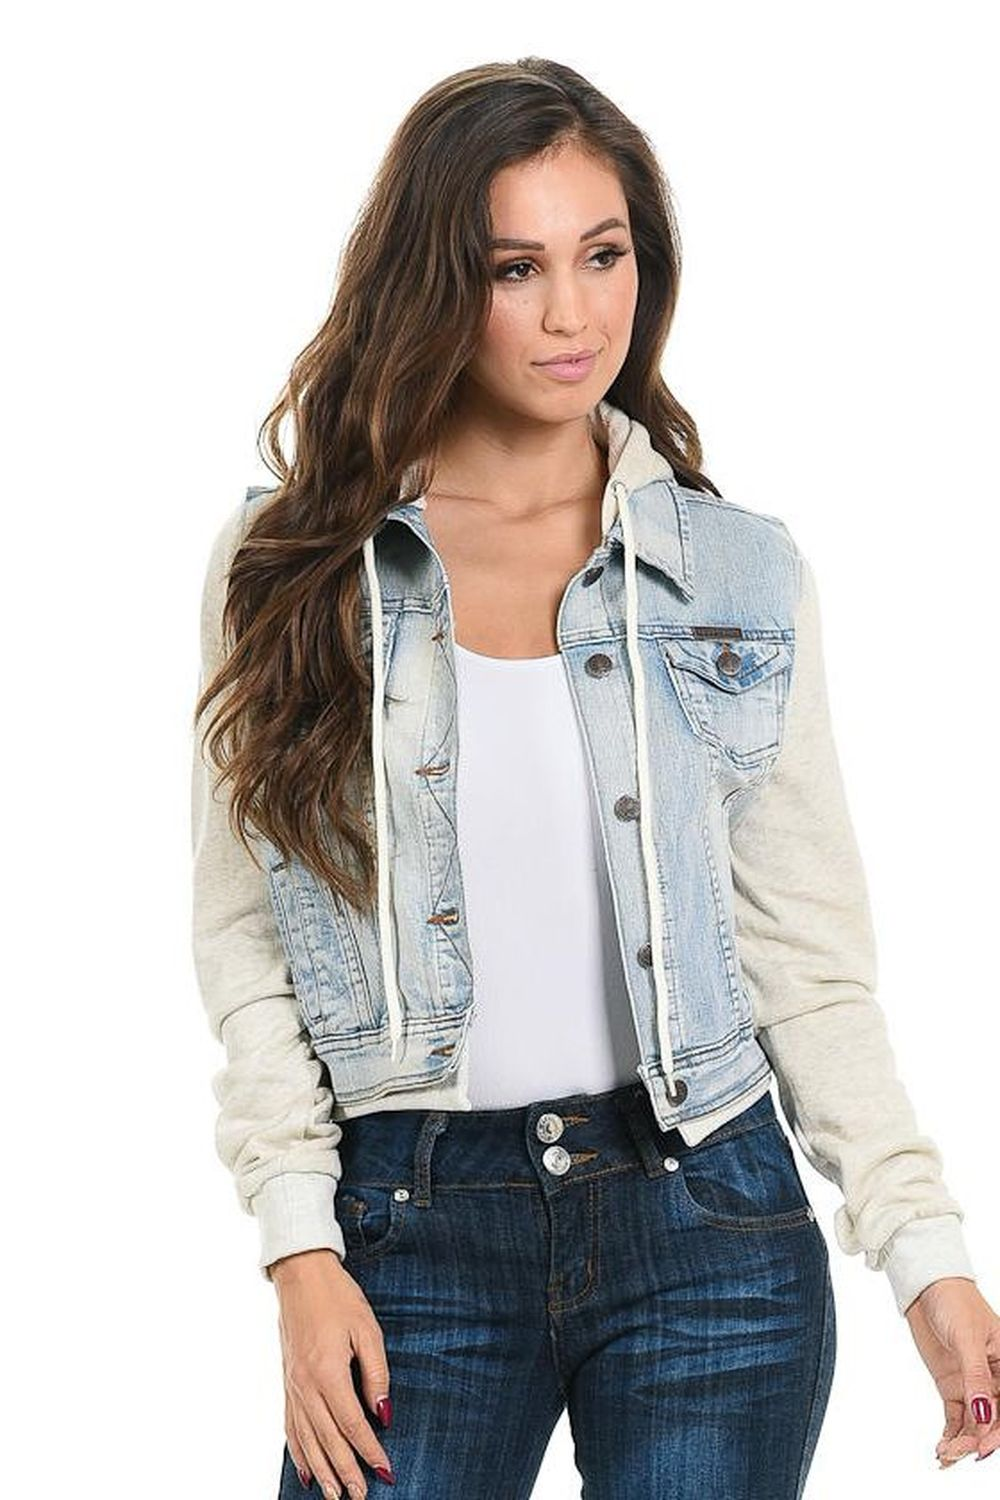 Sweet Look Women's Denim Jacket - Style 577